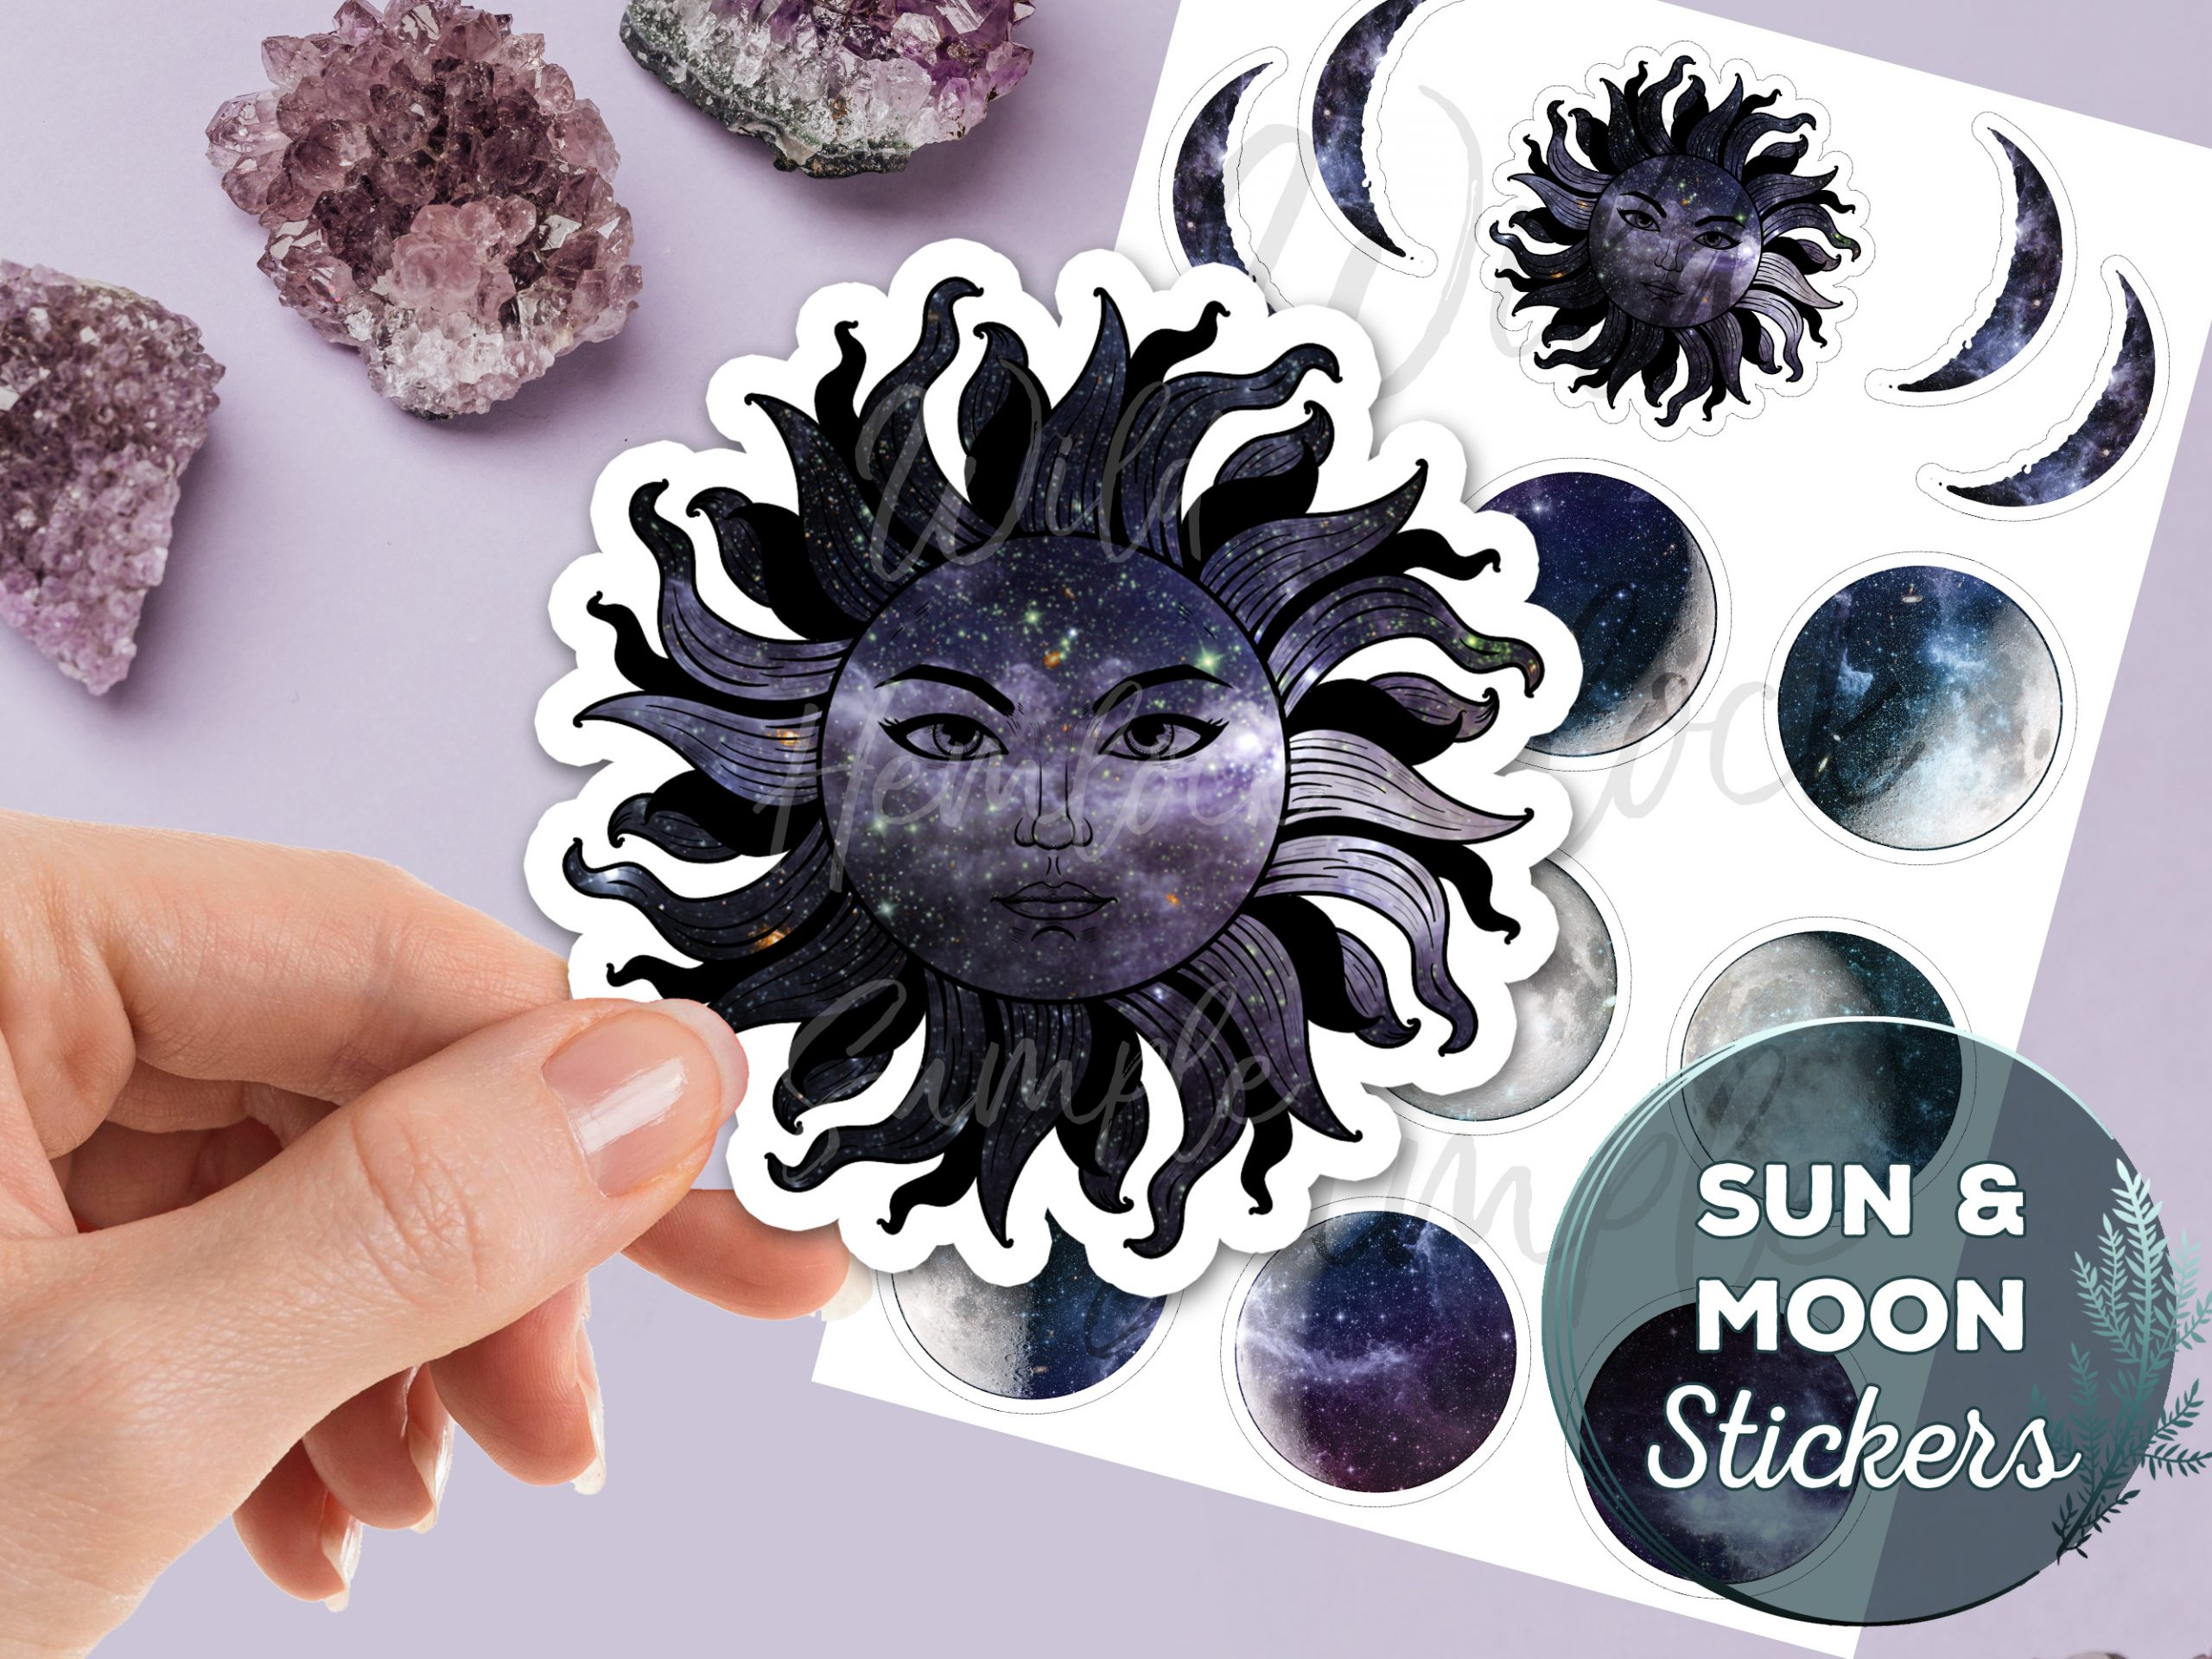 Moon Stickers Sticker Pack Laptop Stickers Galaxy Sticker Celestial Moon Phases Sun and Moon Crescent Moon Vinyl Stickers Witch Stickers at WildHemlock.com